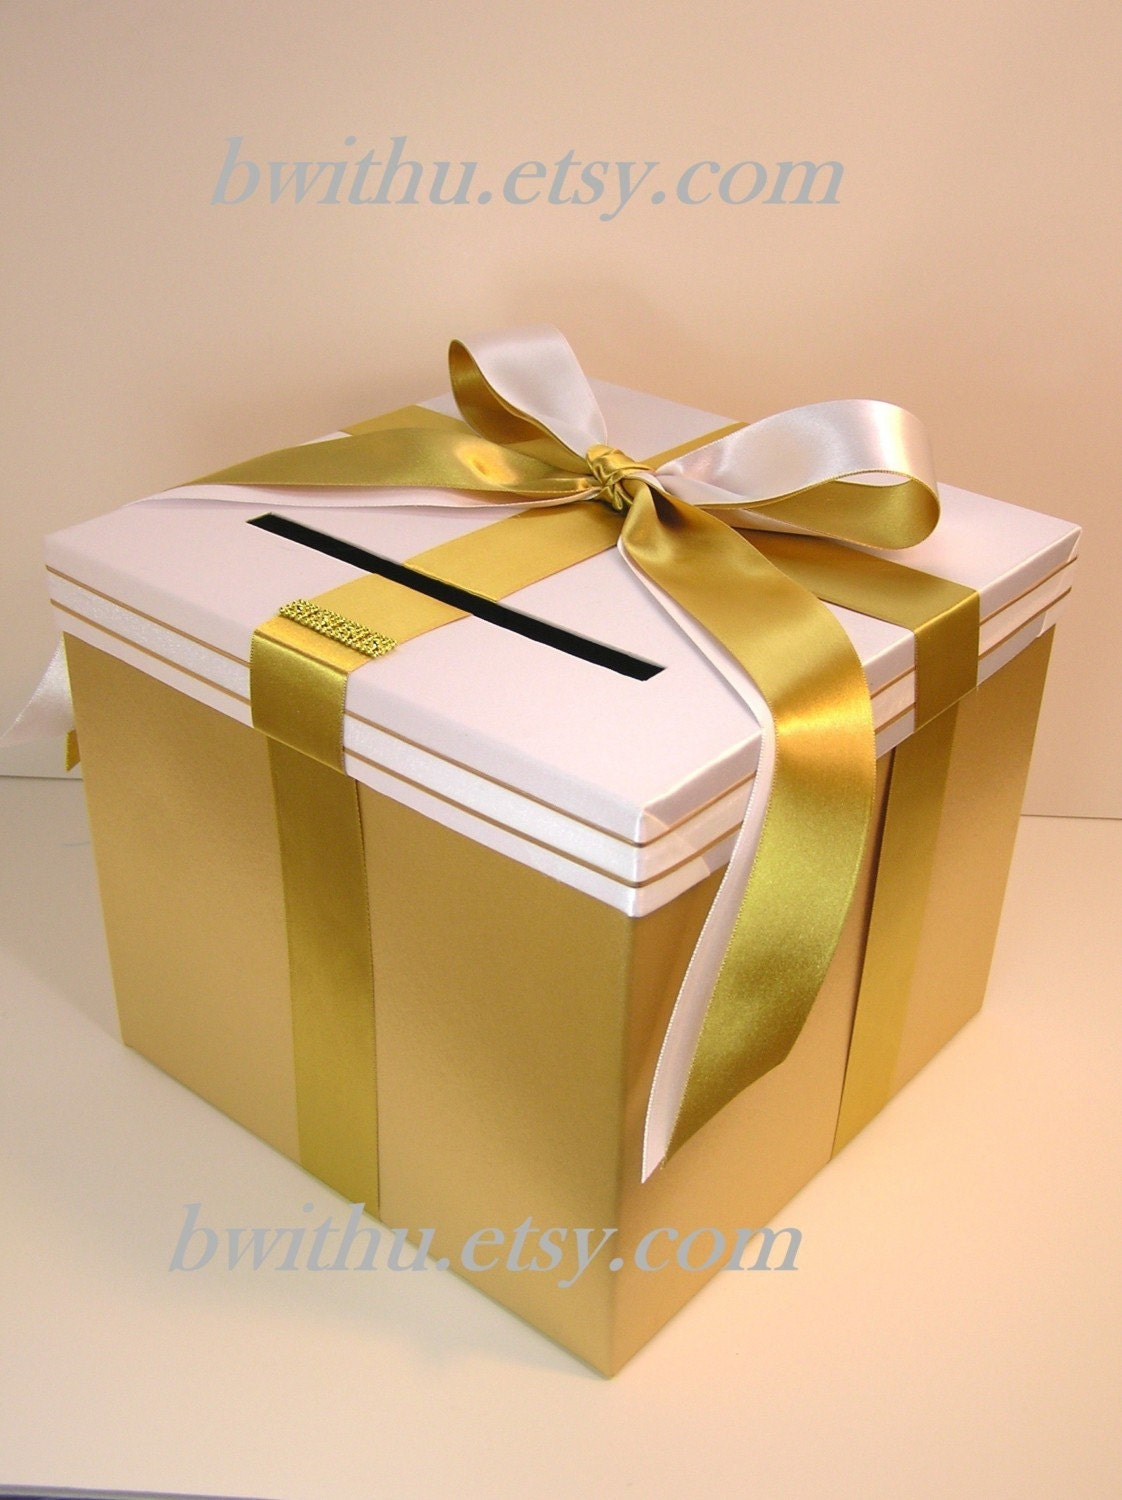 Black And White Wedding Gift Card Box : Wedding Card Box Gold and Black Gift Card Box by bwithustudio